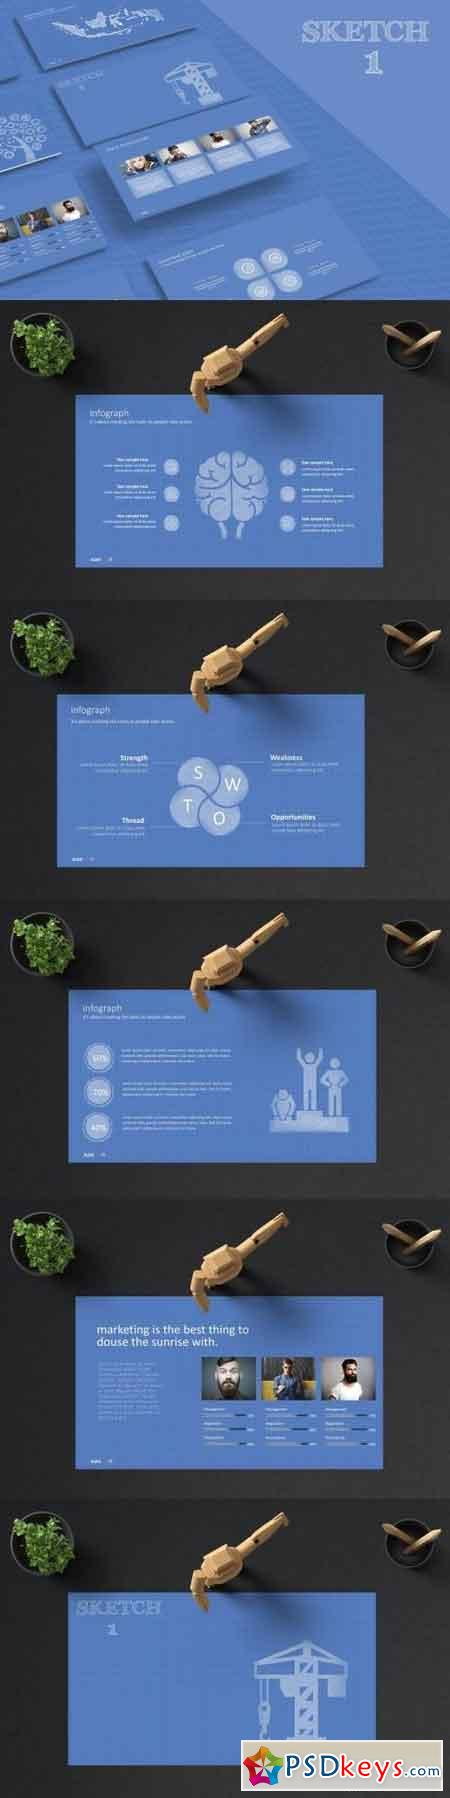 SKETCH 1 Powerpoint Template